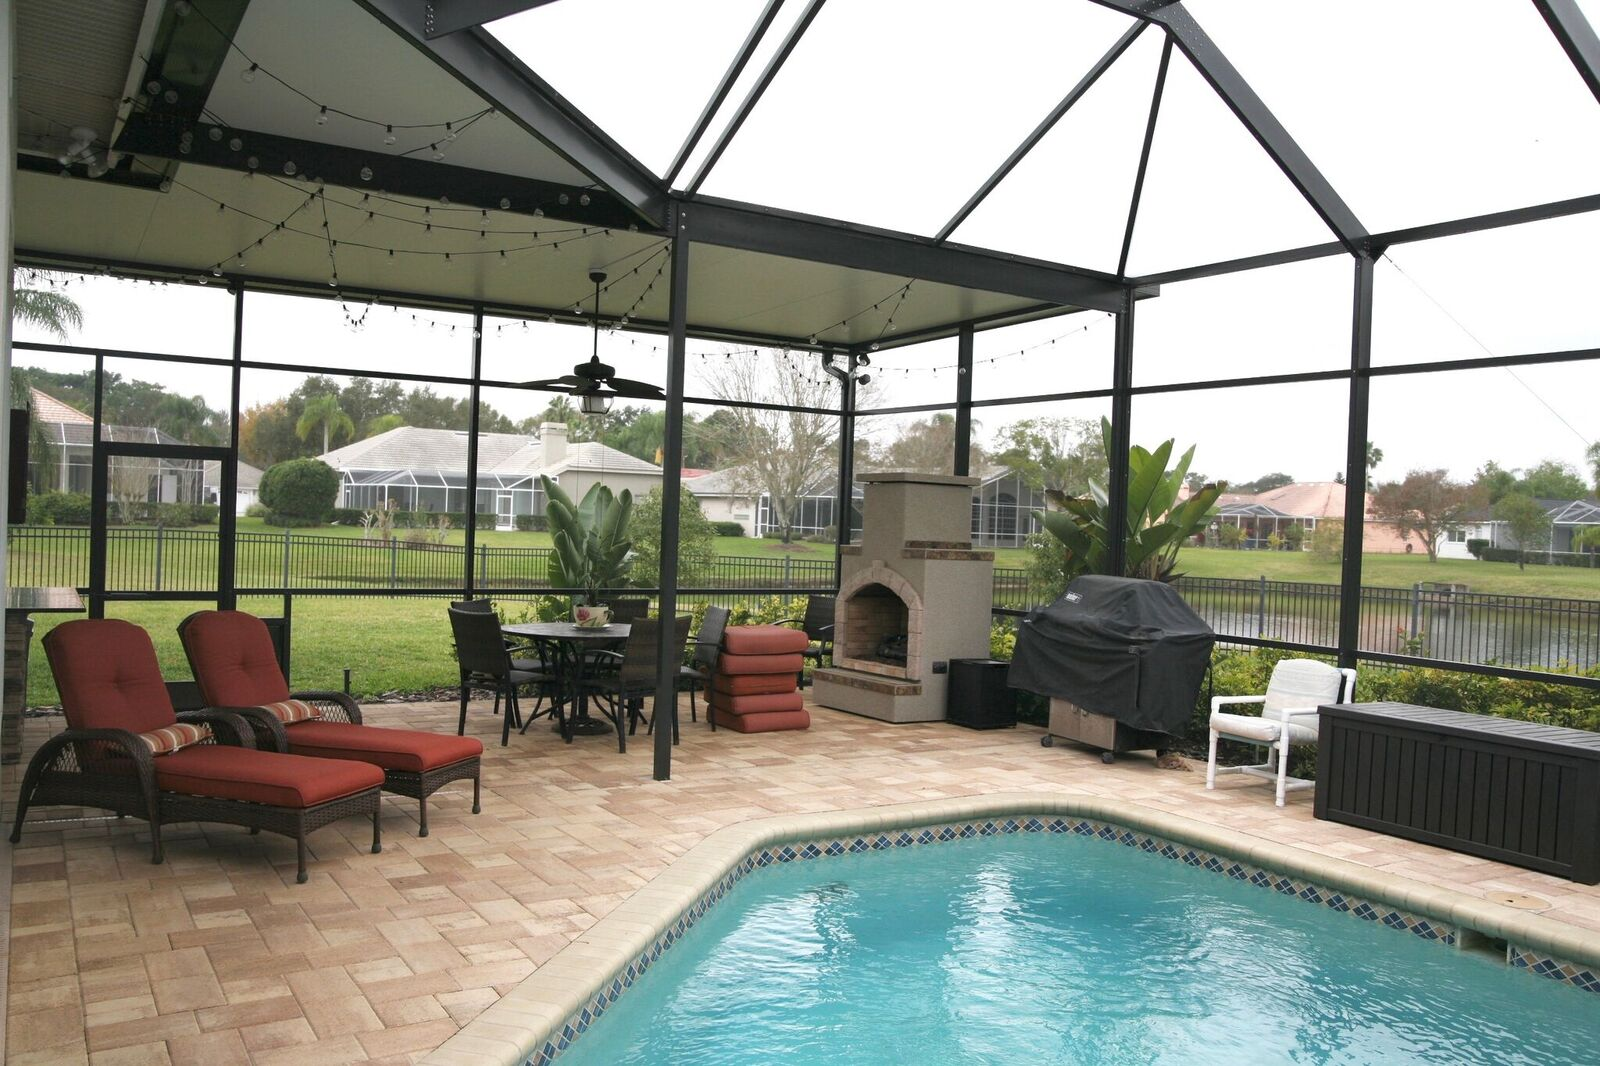 Pool Enclosures In Oldsmar Palm Harbor Clearwater Tampa Beyond For A Beautiful Home Addition